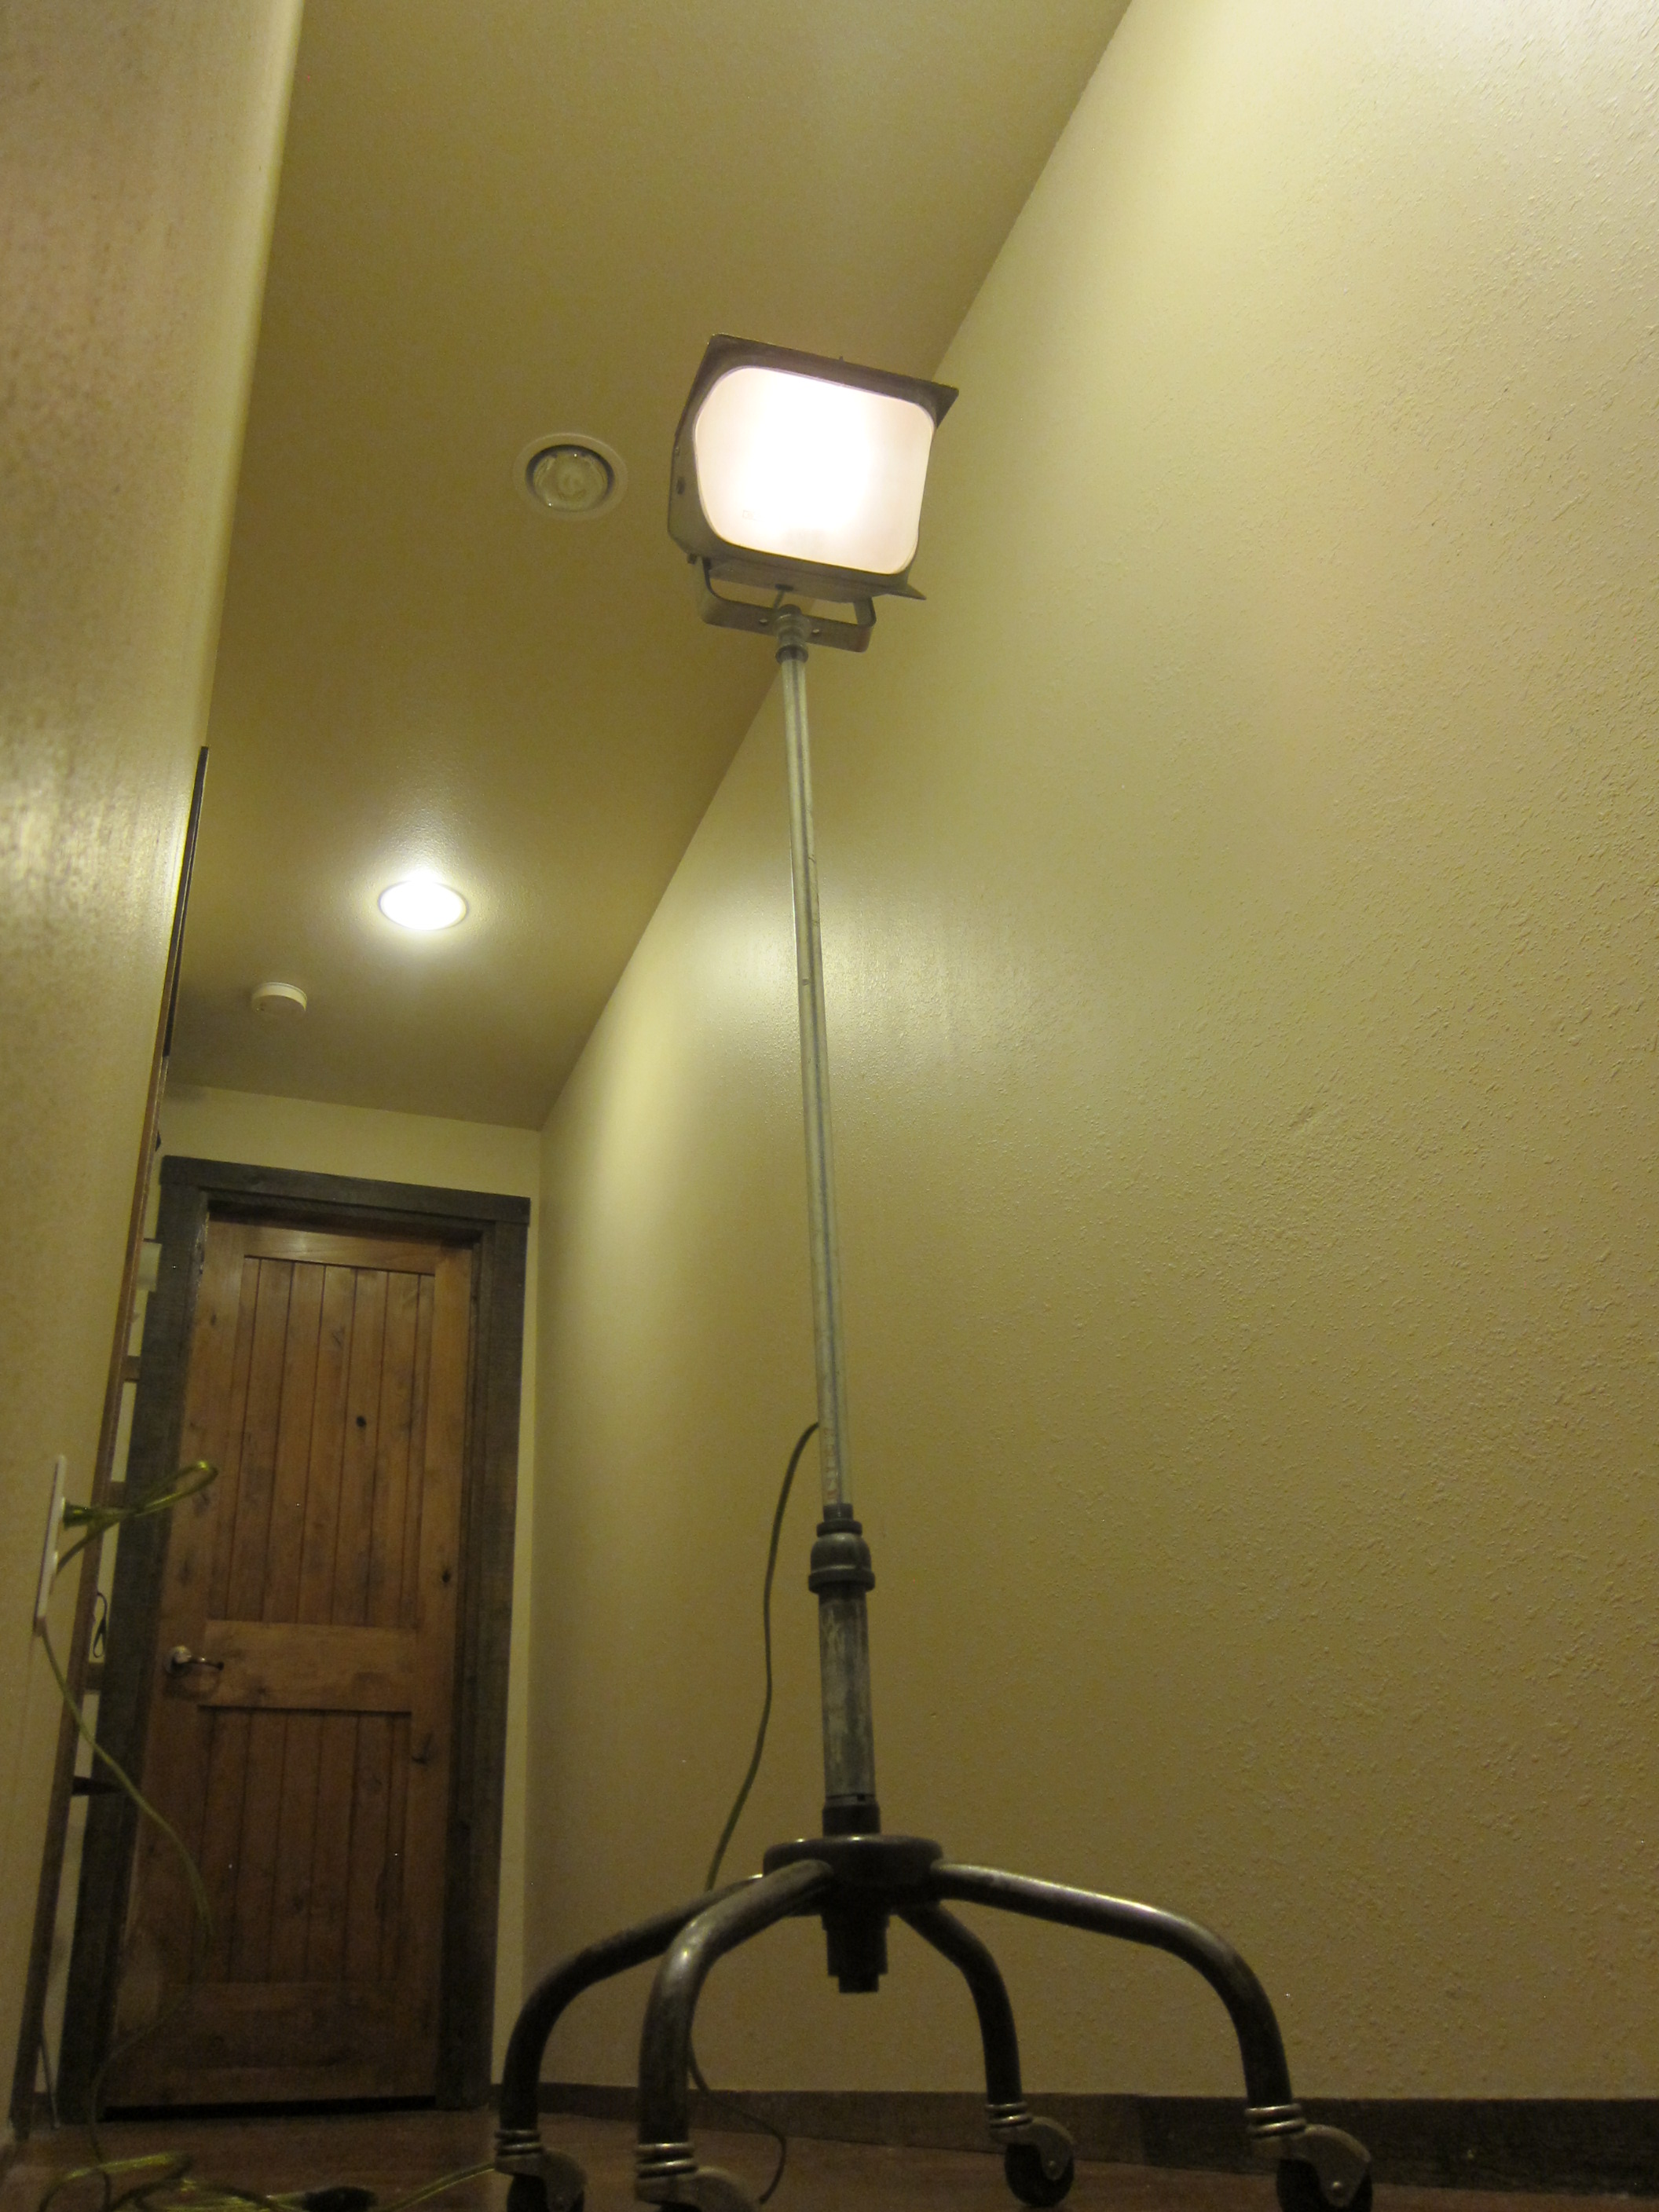 Floor Lamp 5 or What To Do With a Broken Roller Chair